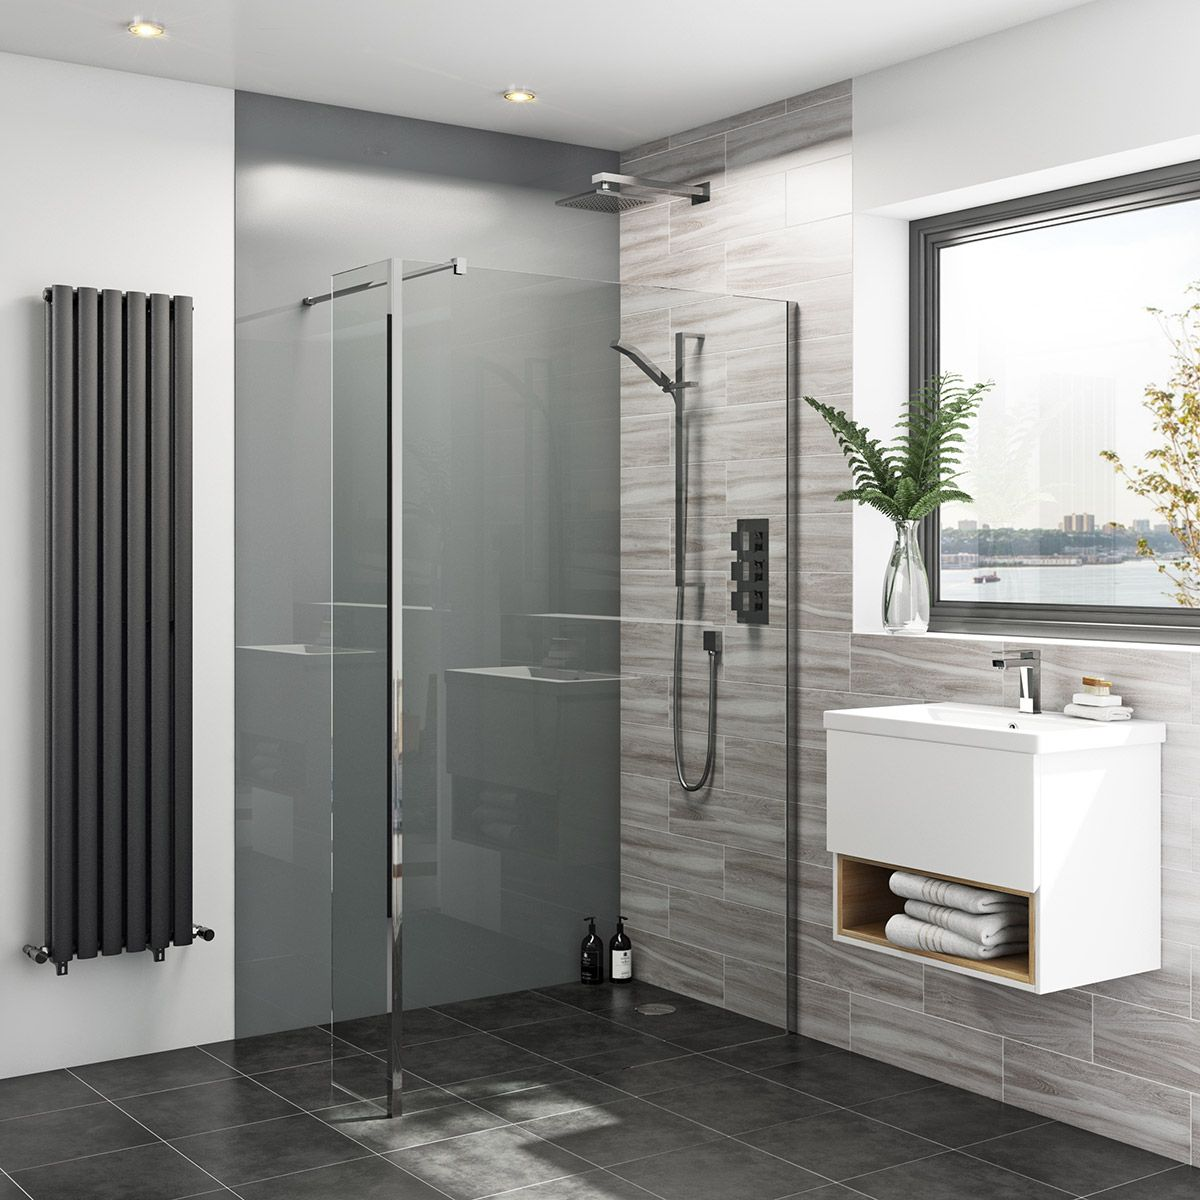 Zenolite plus ash acrylic shower wall panel 2440 x 1220 | Bathroom ...